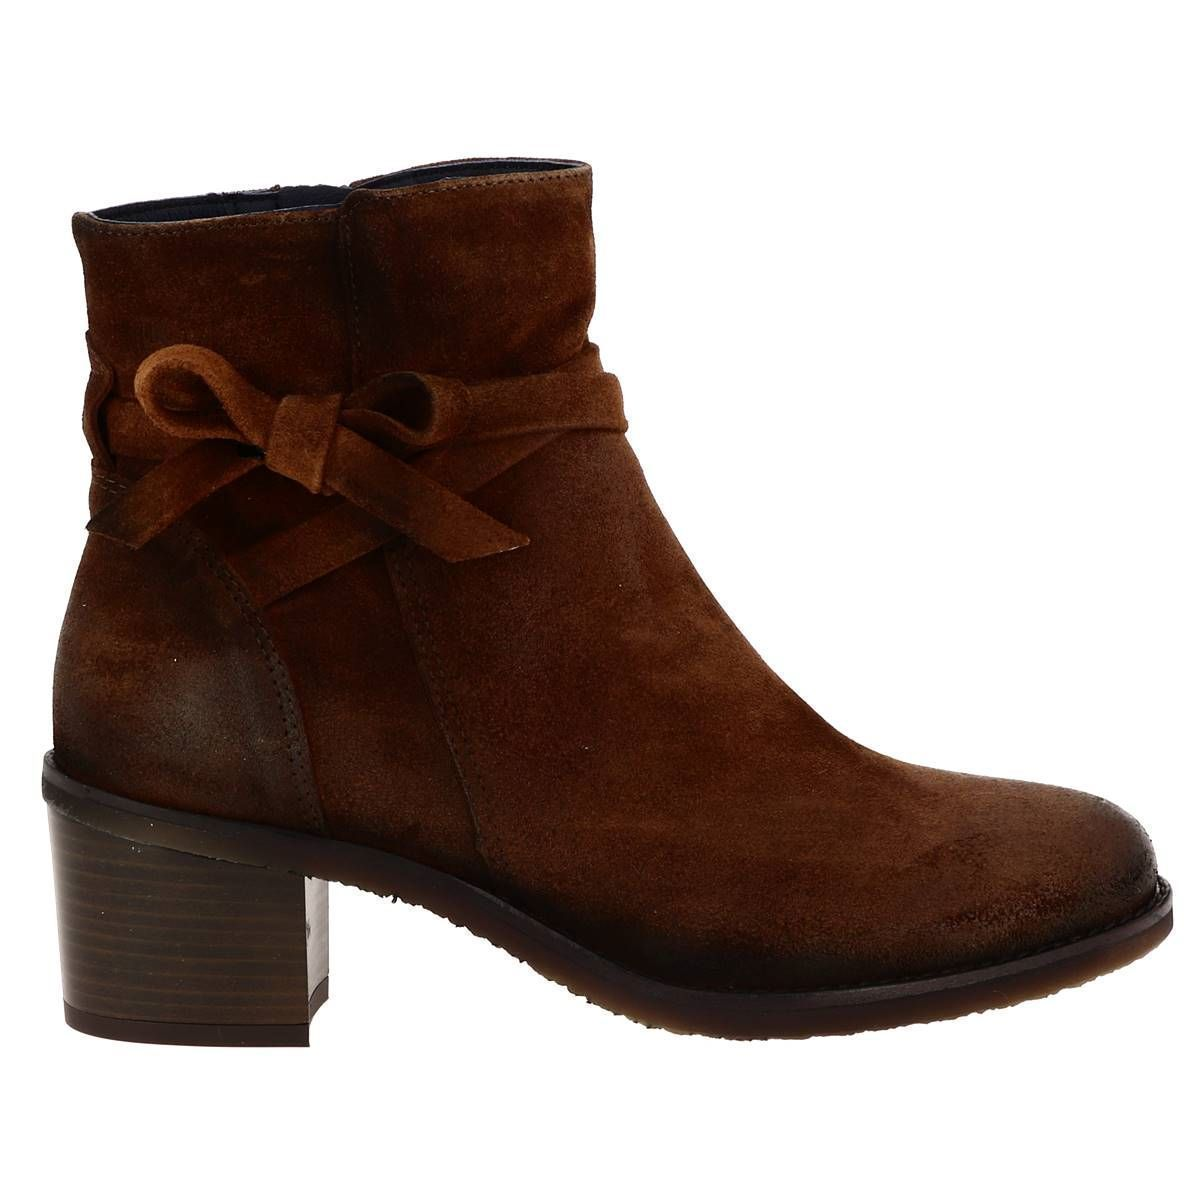 CTAS LIFT OX 7335:MARRON/CUIR/CUIR/SYNTHETIQUE/Marron